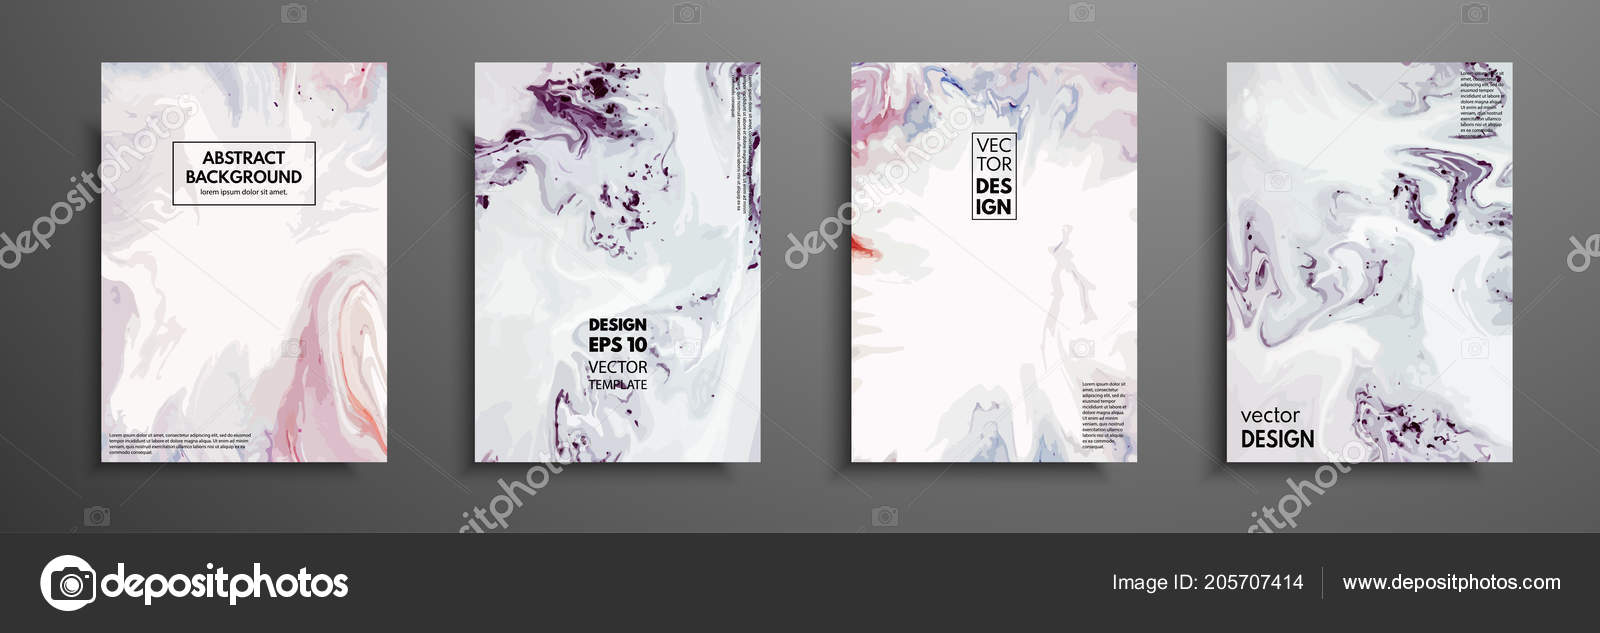 Mixture of acrylic paints  Design template with fluid art  Vector